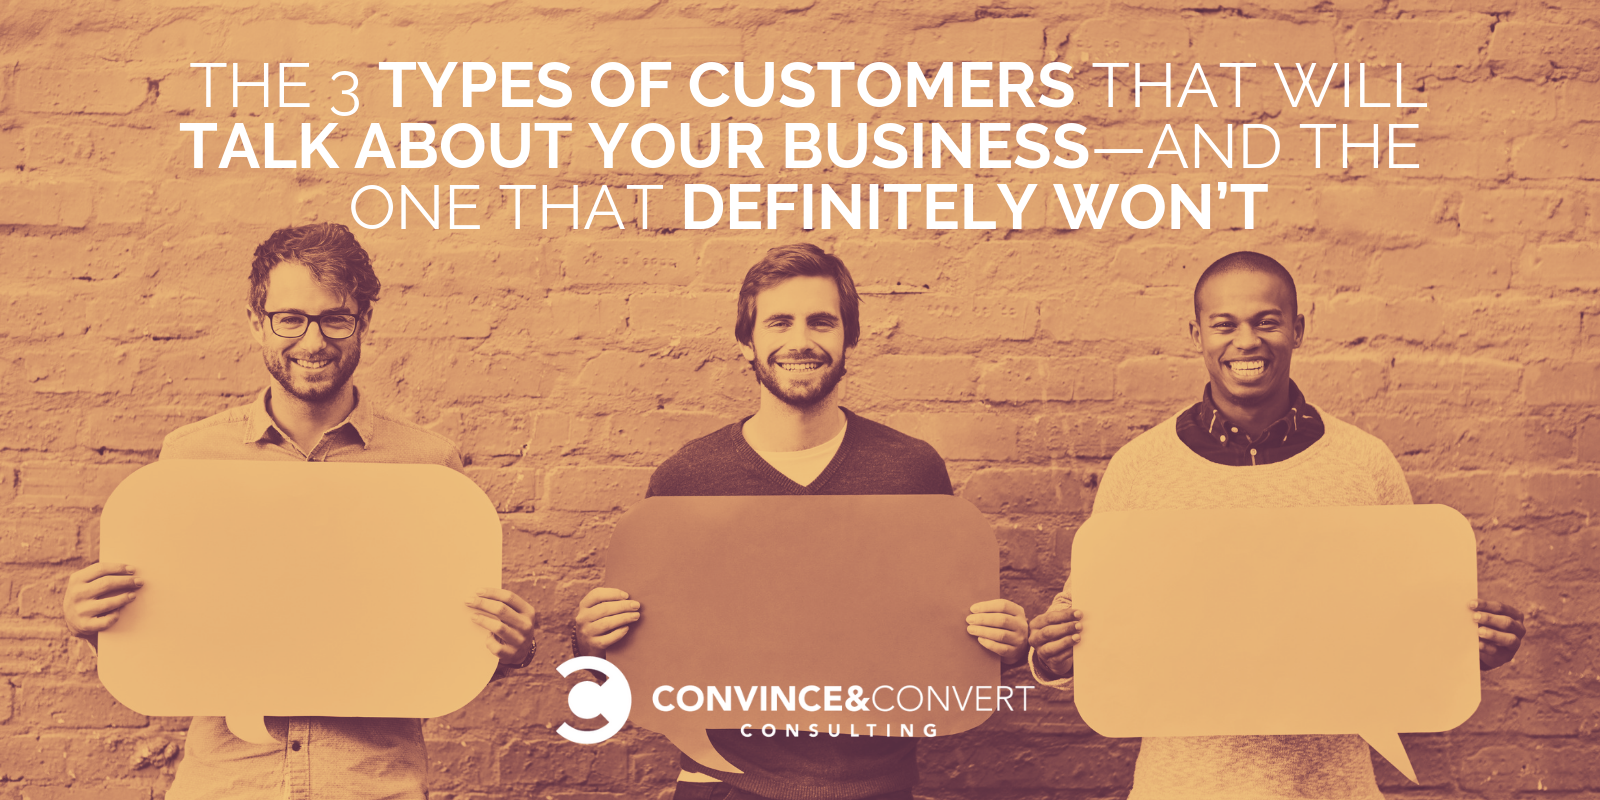 The 3 Types of Customers That Will Talk About Your Business—and The One That Definitely Won't